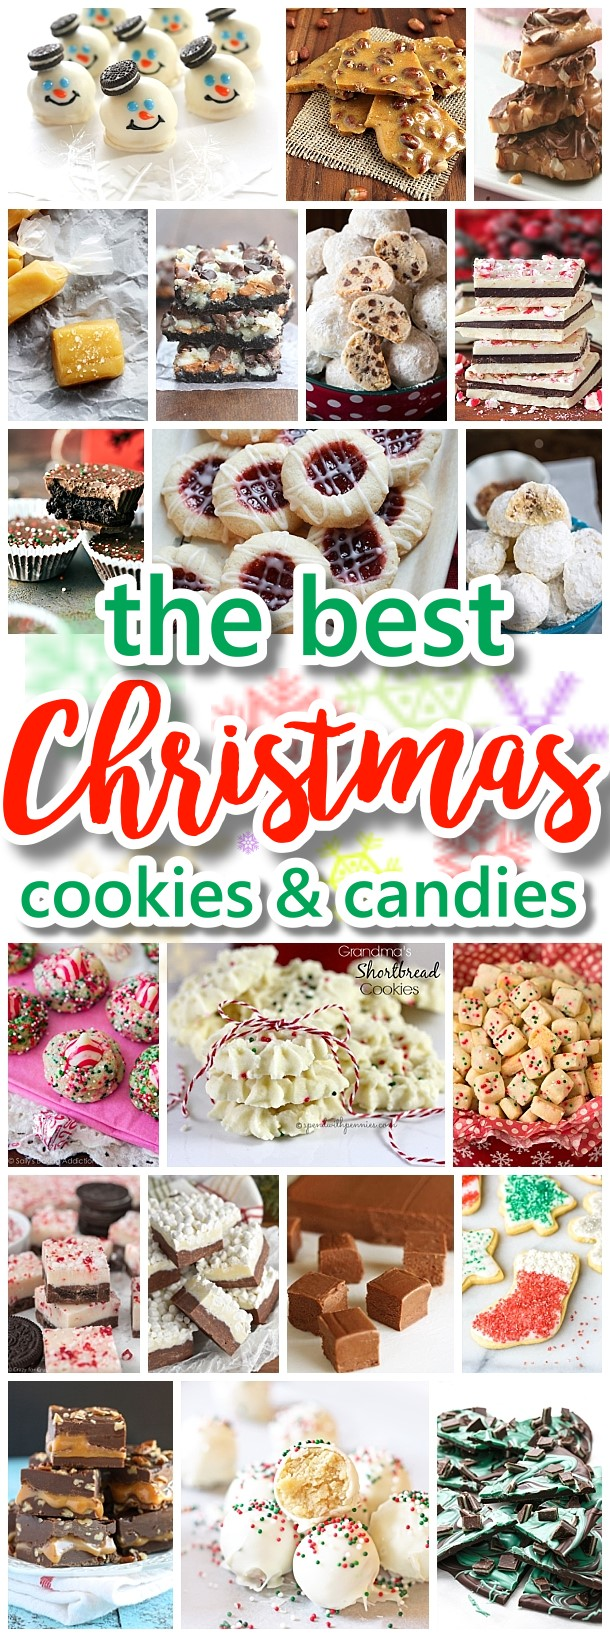 The BEST Christmas Cookies, Fudge, Candy, Barks and Brittles Recipes - Favorites for Holiday Treats Gift Plates and Goodies Bags! Dreaming in DIY #chrstmascookies #christmascandy #christmastreats #holidaydesserts #holidayrecipes #christmascandies #holidaygiftplates